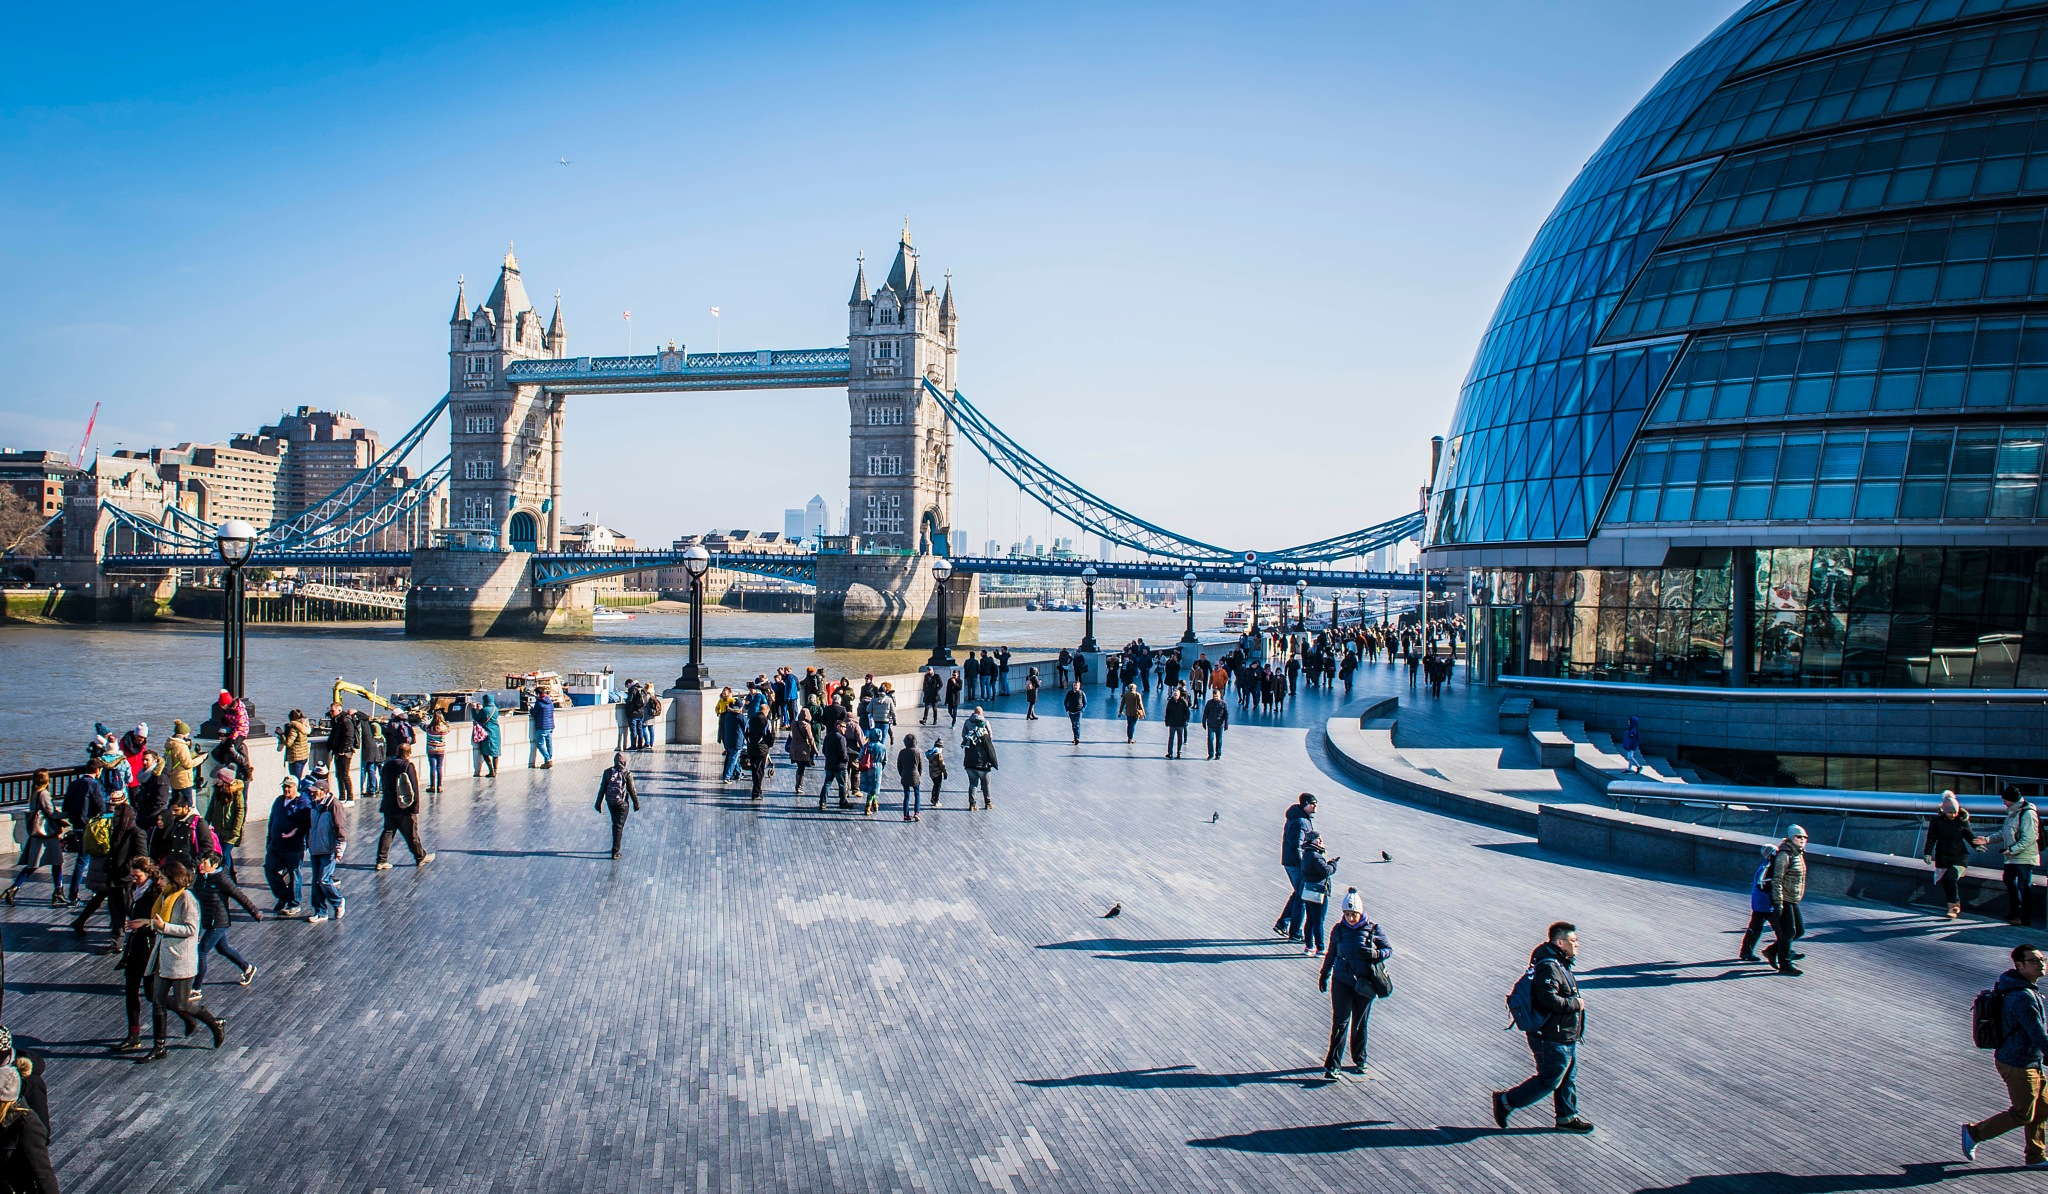 A piece of historic London by Mark Lindsay